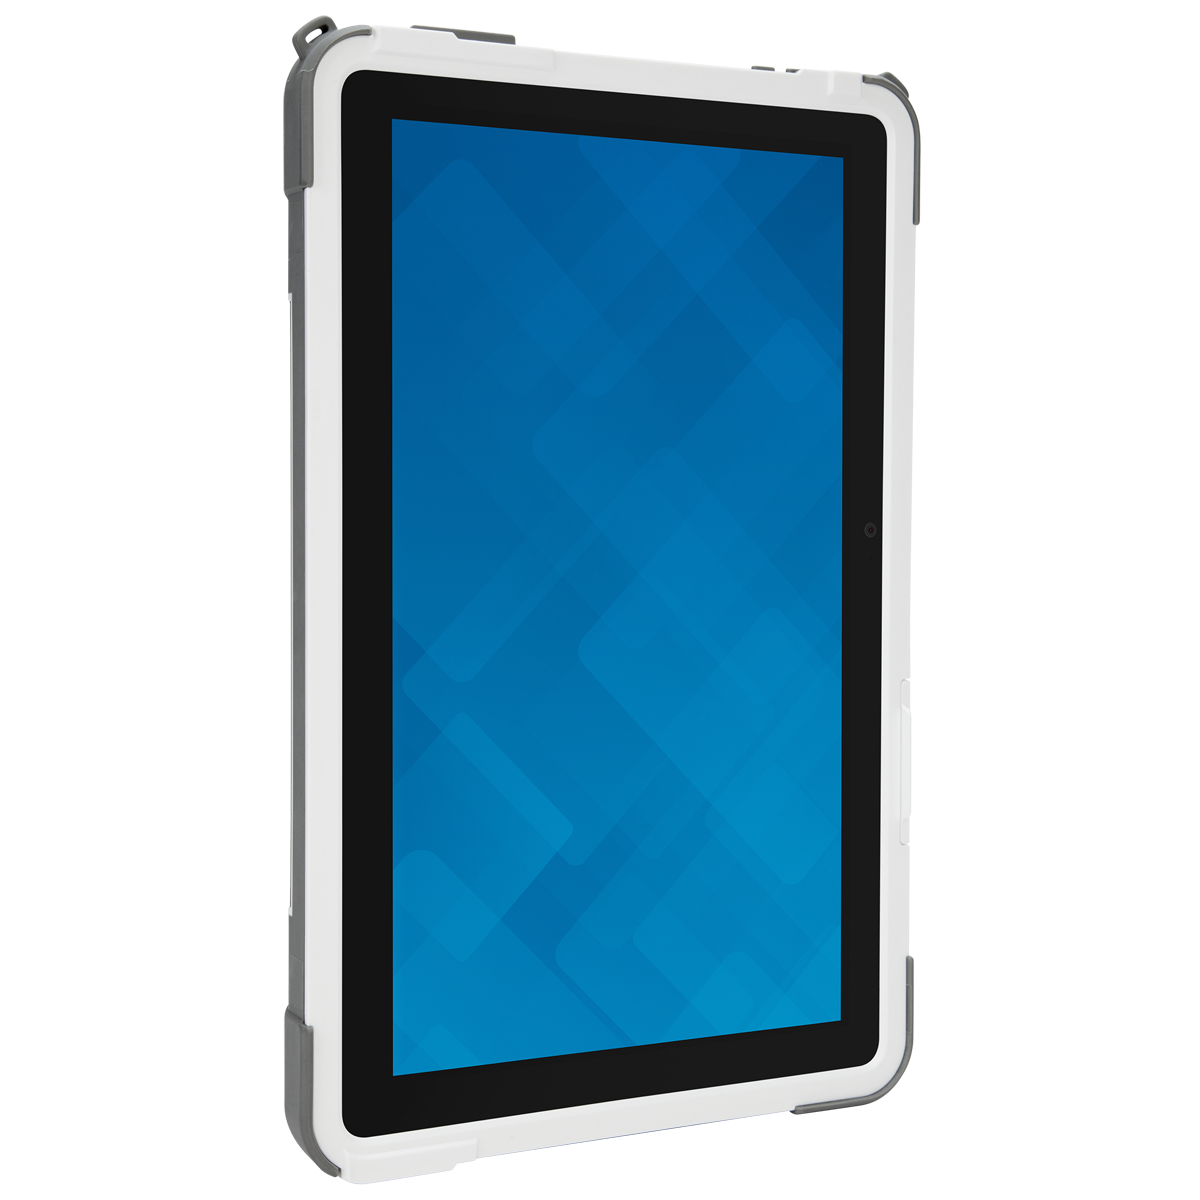 Rugged safeport max pro healthcare tablet case for dell for Motor vehicle crashes cost american taxpayers over